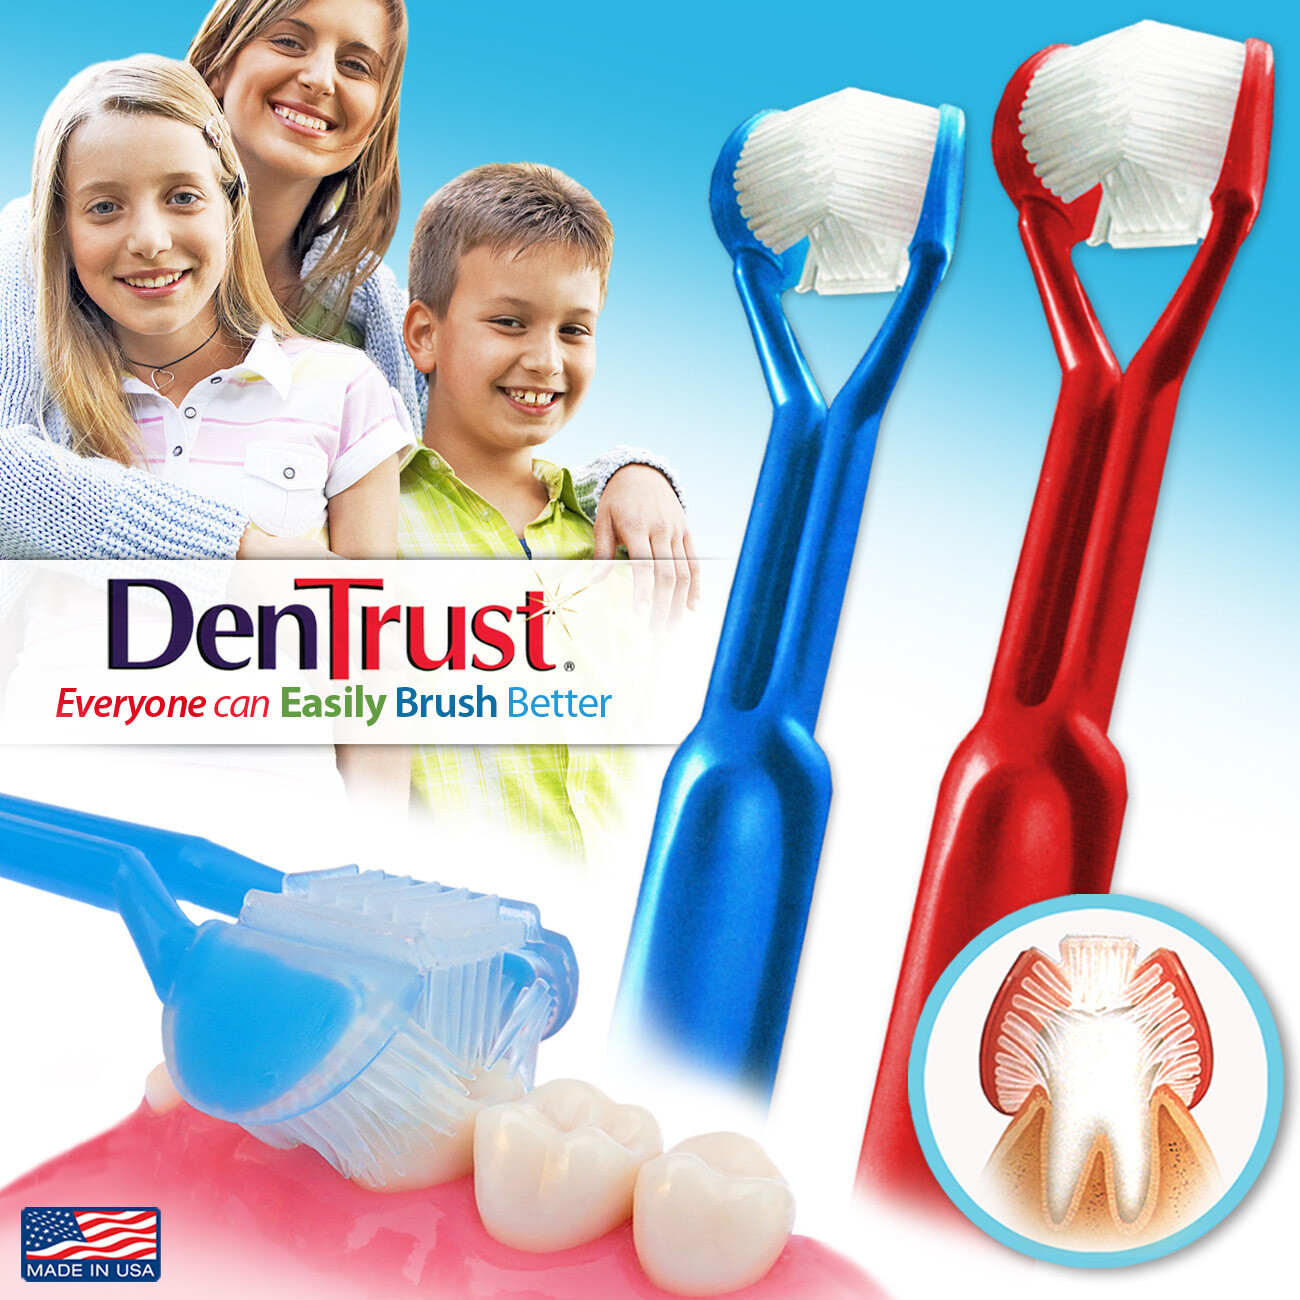 2-PK | DenTrust The Only Child-Safe 3-SIDED Toothbrush  | Easily Brush Better | Clinically Proven Results | Fast, Easy & More Effective for: Adults, Teens, Kids, Children & Special Needs | Made in USA